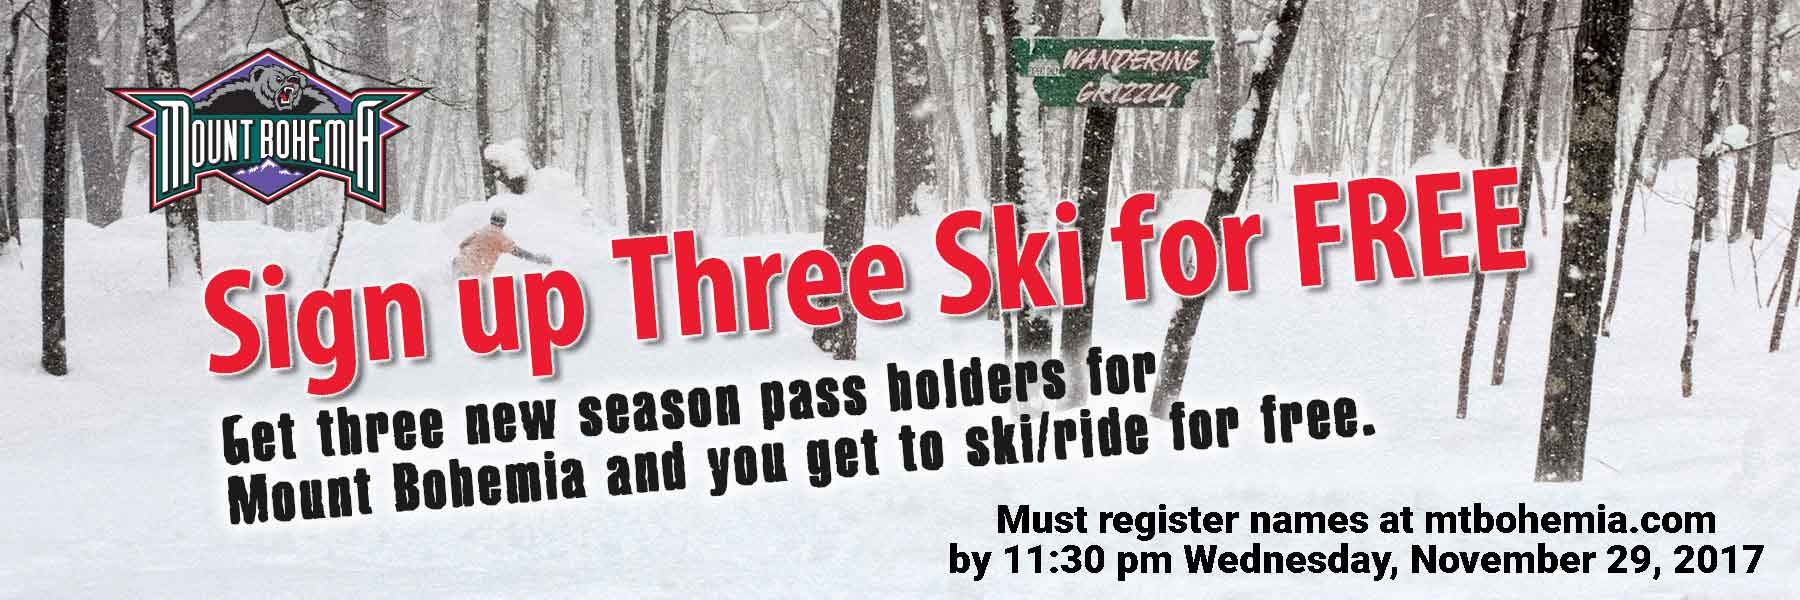 mount bohemia sign up three ski free